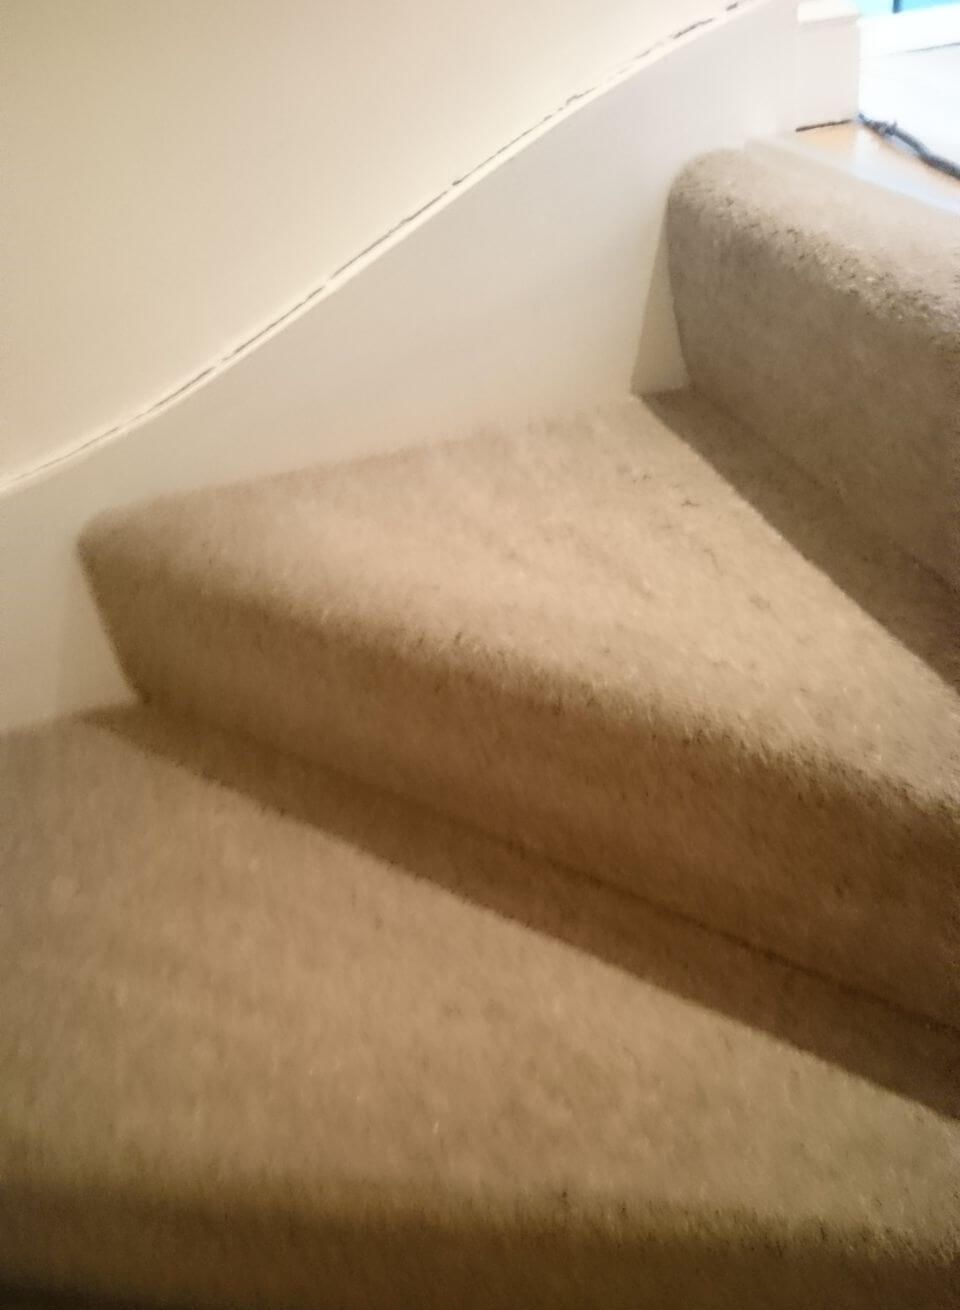 cleaning a carpet stain Queensbury